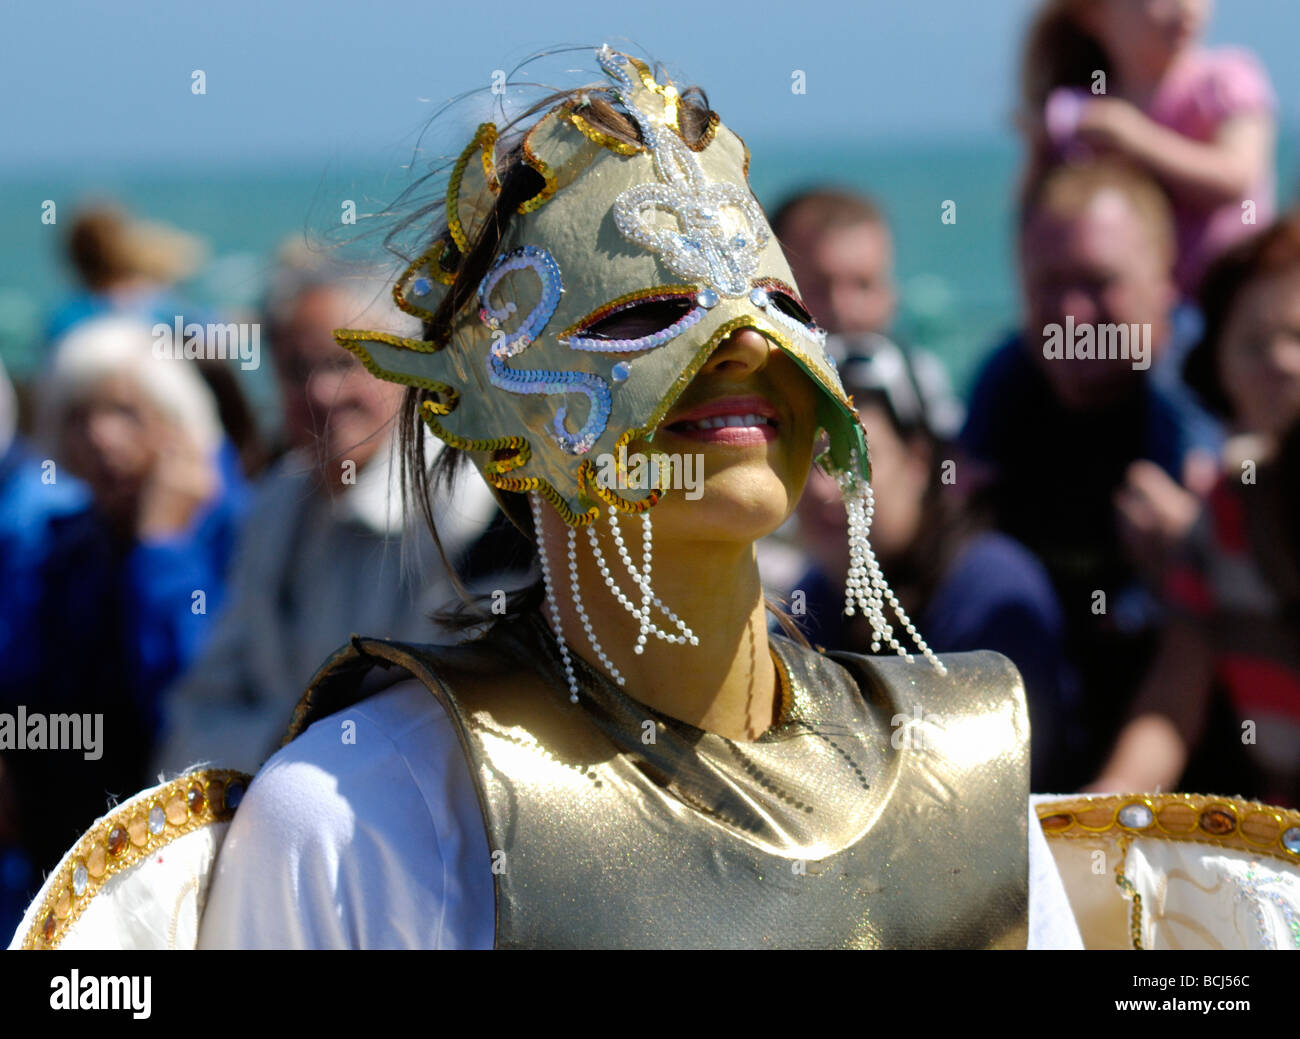 Girl in silver costume and mask in street parade - Stock Image